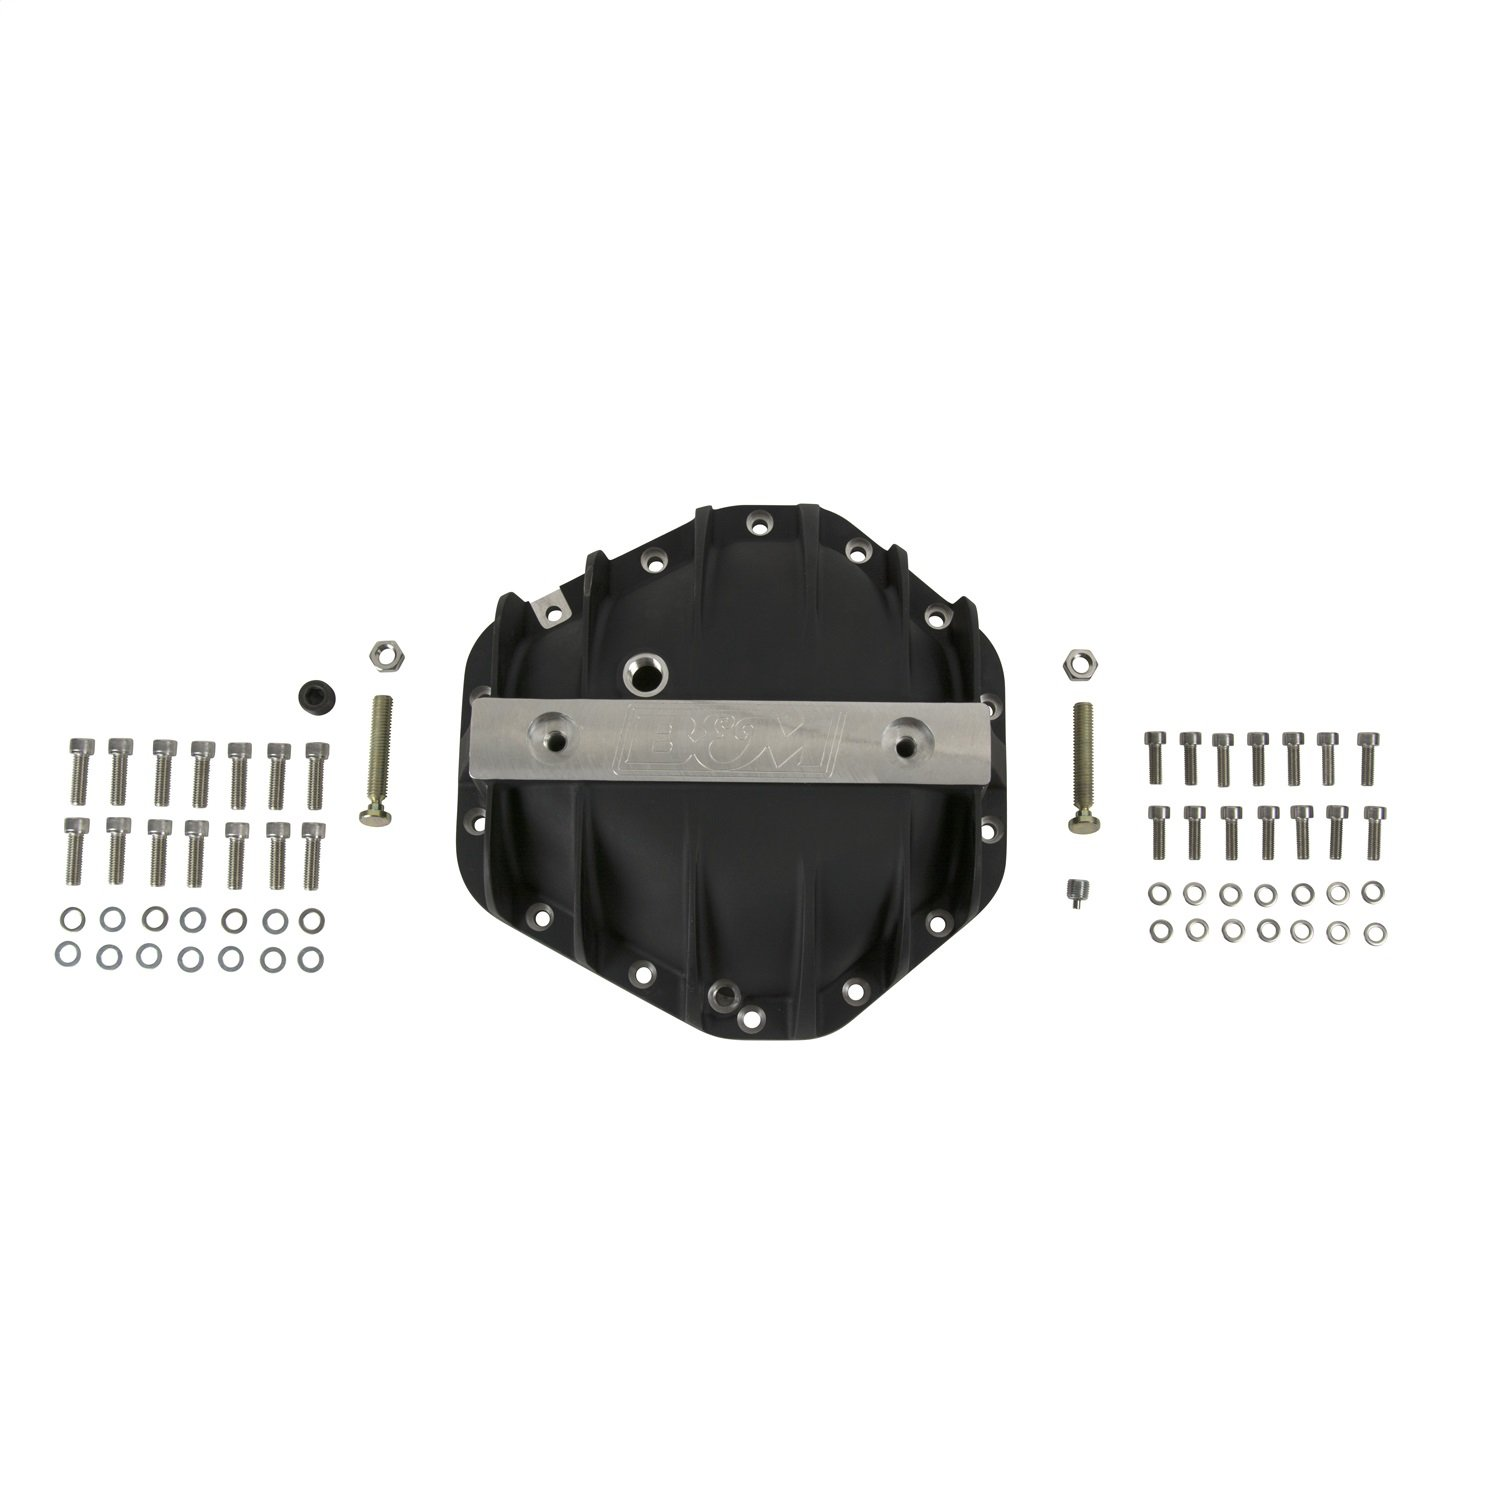 Cover//Fill And Drain Plugs//Bolts//Washers//Load Bolts//Nuts Black Differential Cover 14 Bolt Incl B/&M 71501 Differential Cover For Use w//GM 10.5 in